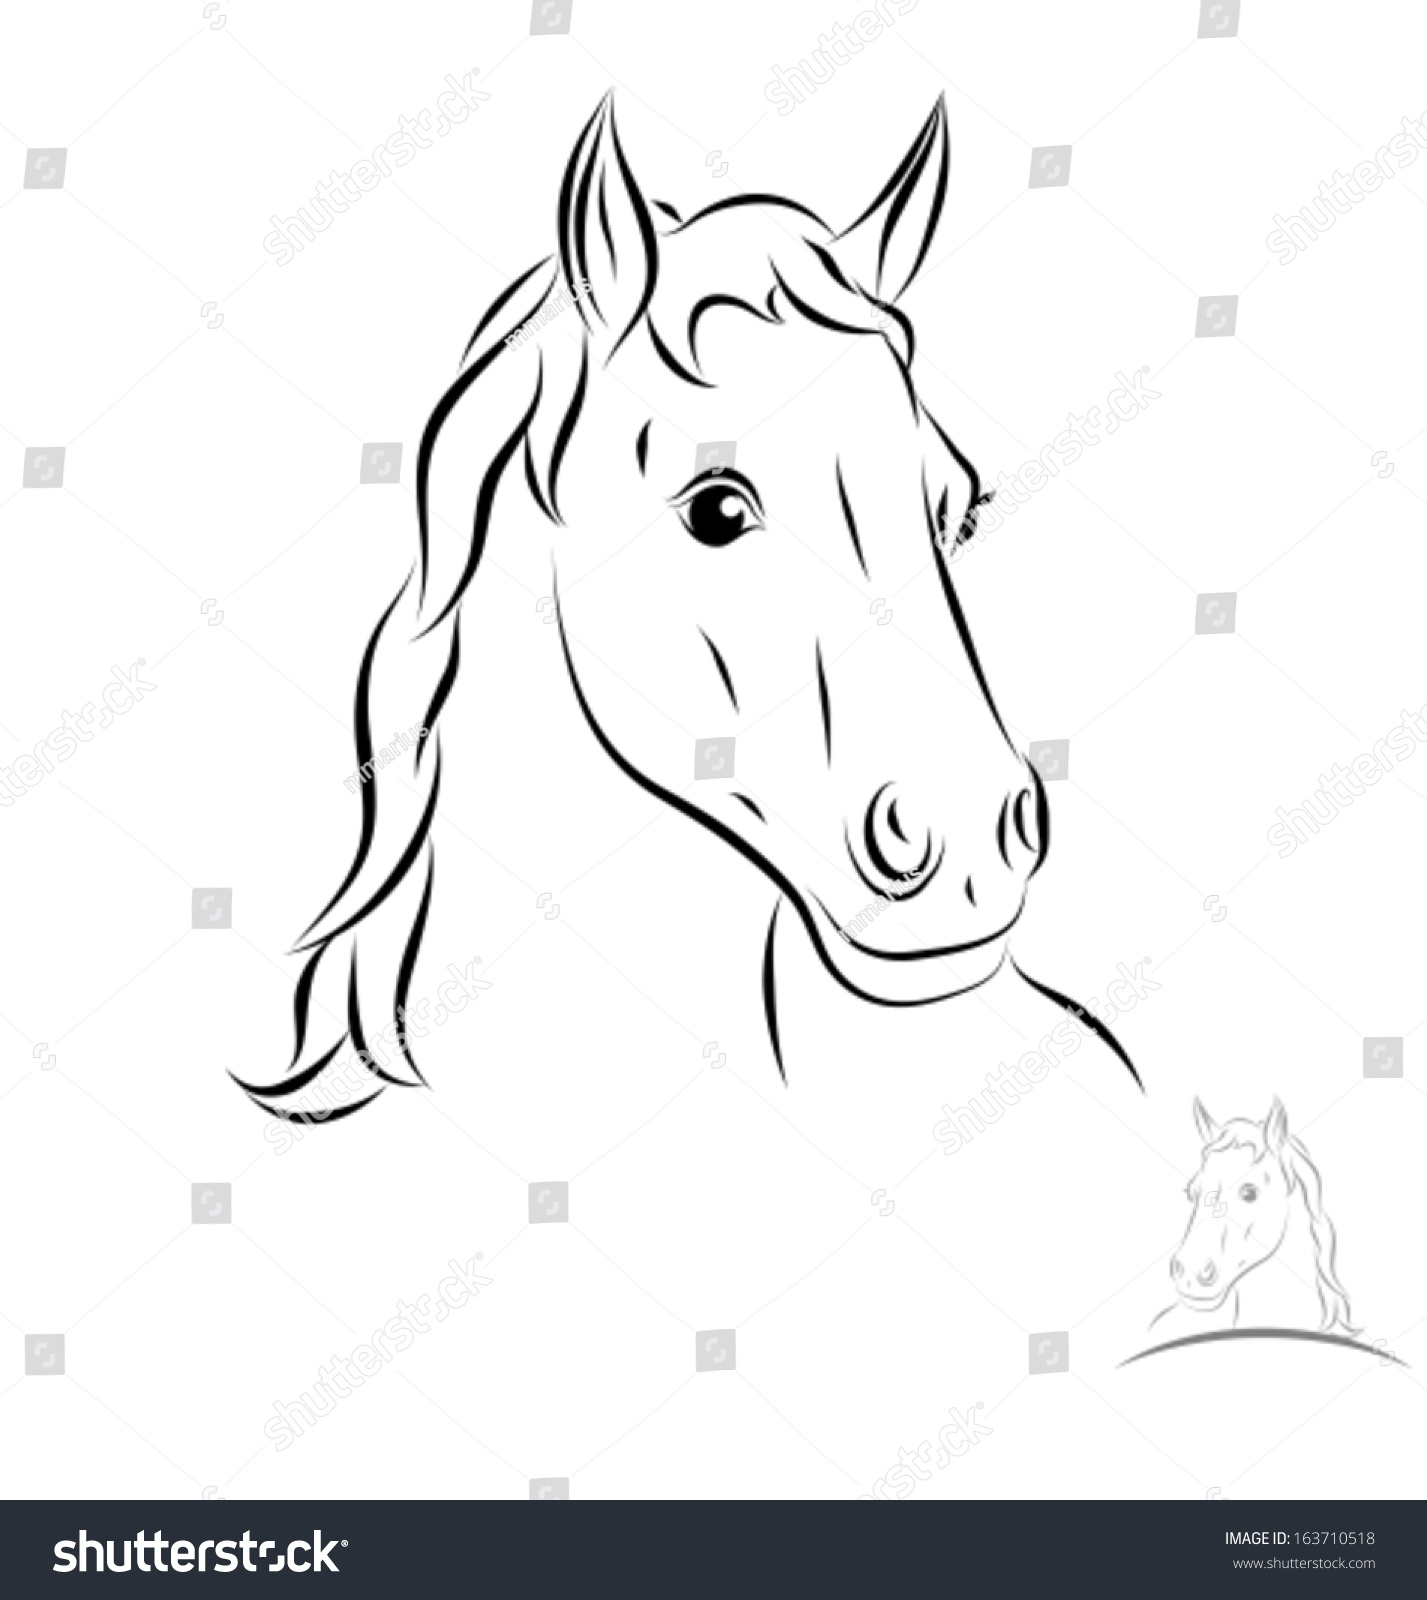 Stylized Horse Head Front View Black Stock Vector ...